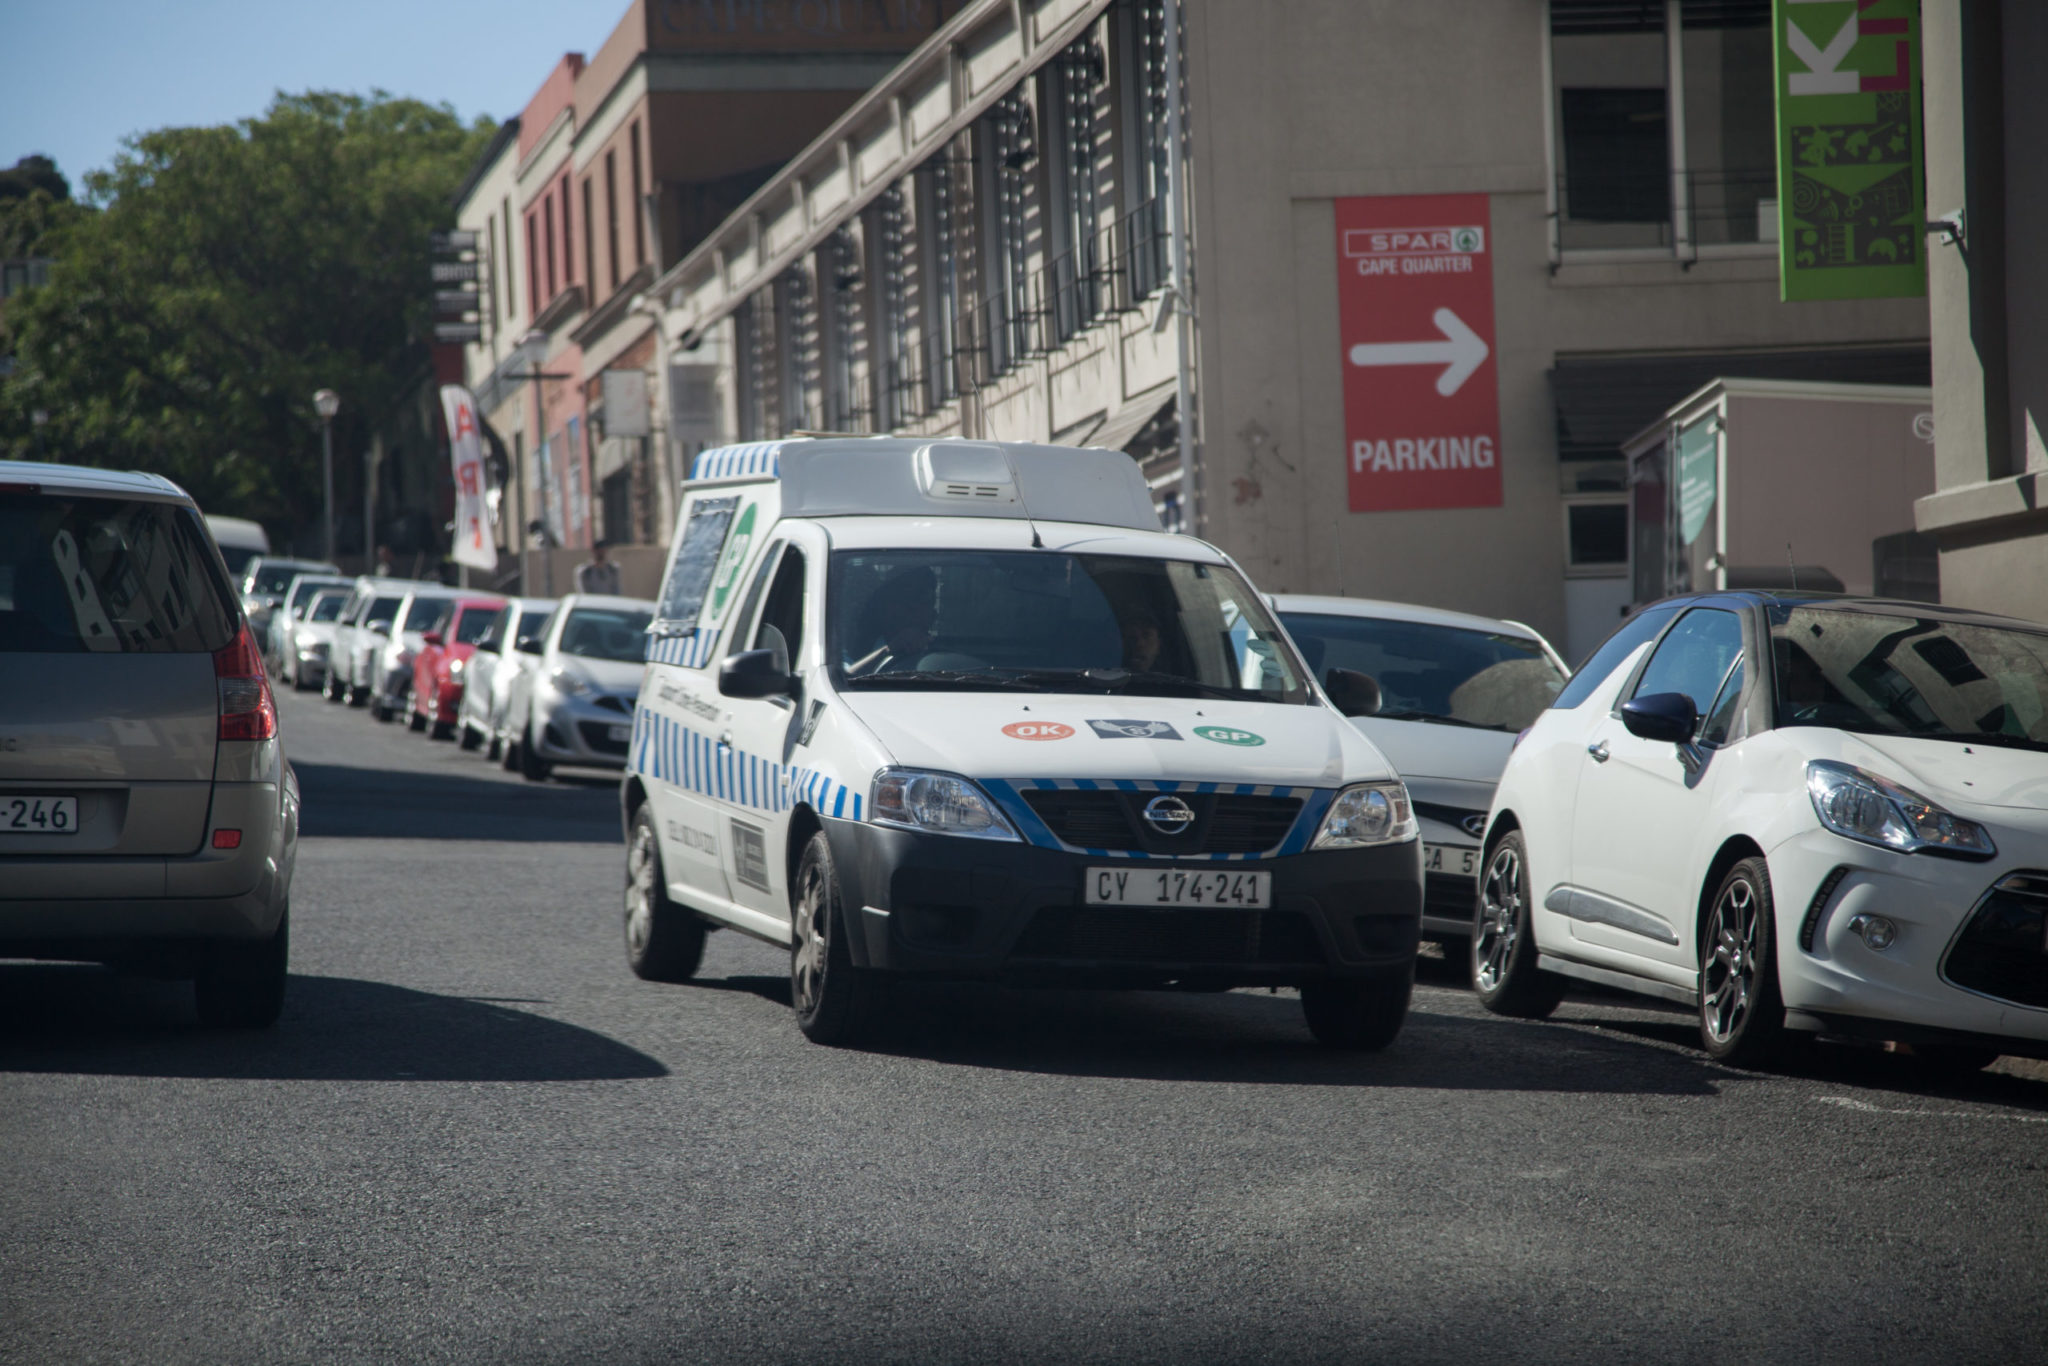 GP/OKCID contributes to a 30% reduction in criminal incidents in 2019